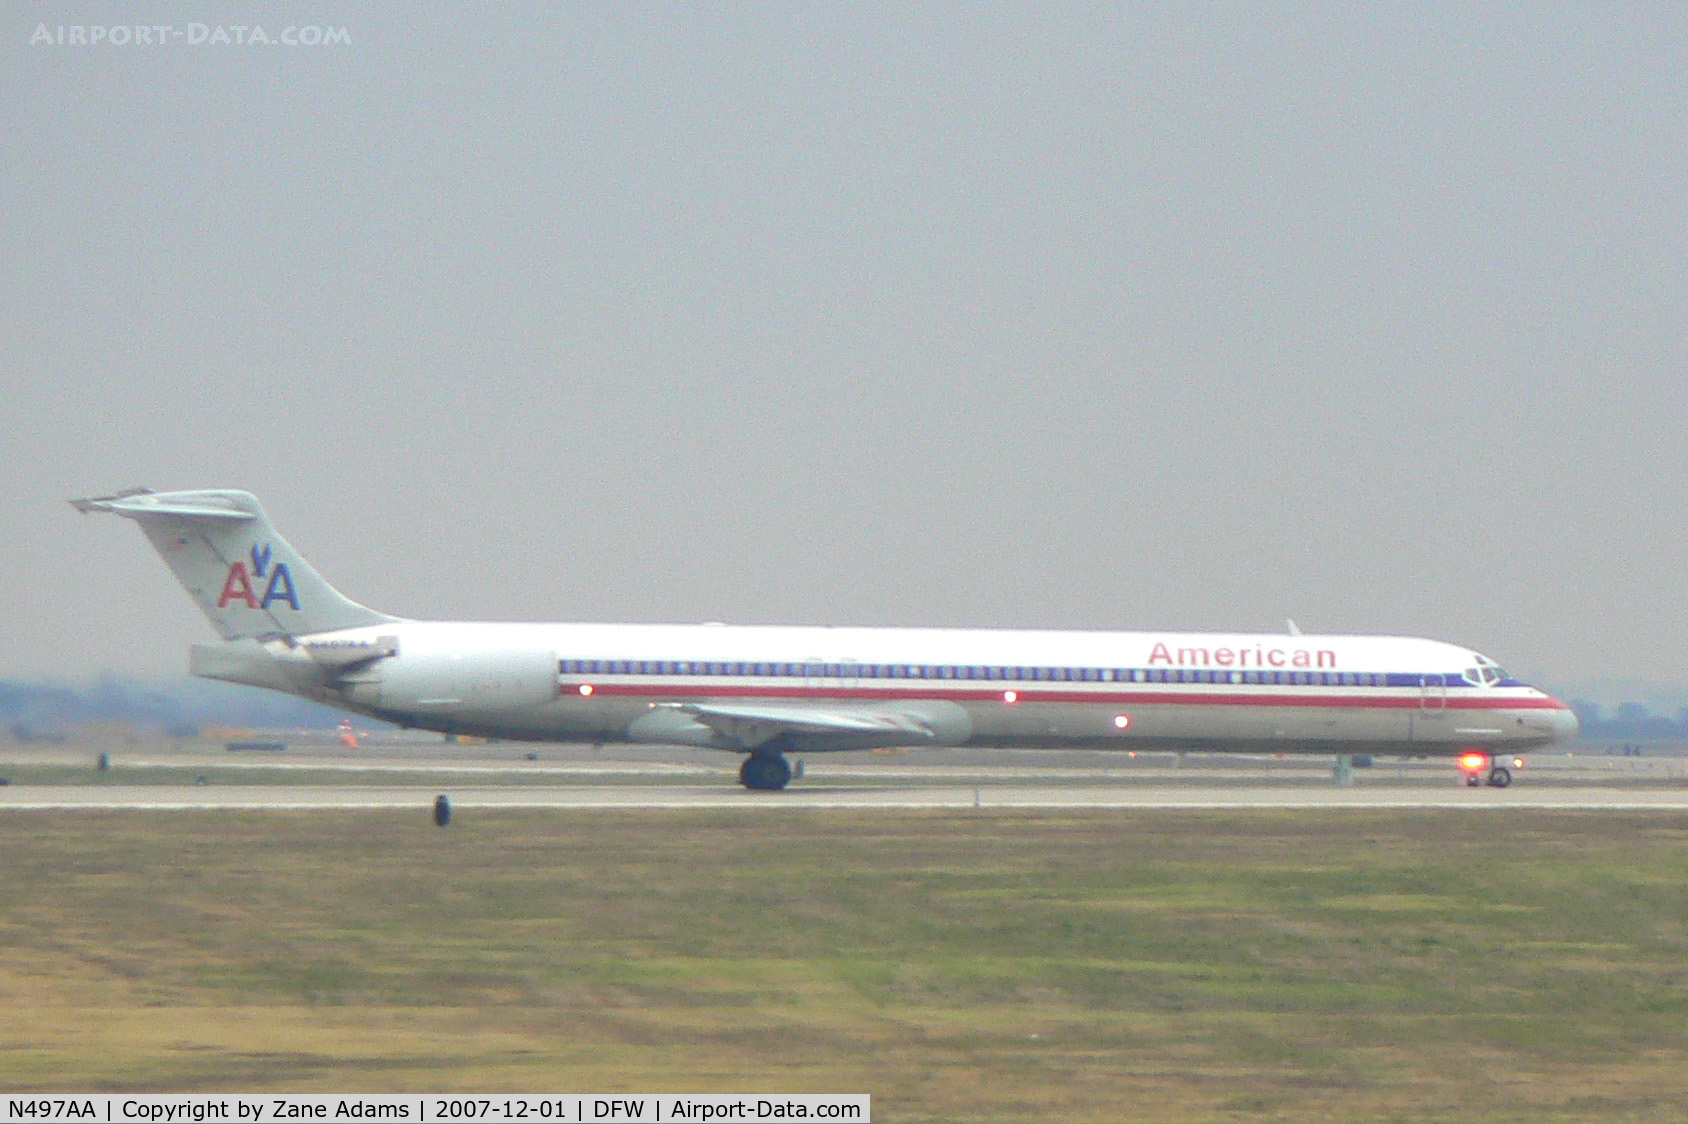 N497AA, 1989 Mcdonnell Douglas DC-9-82(MD-82) C/N 49735, Rainy day at DFW - Holding short 18L